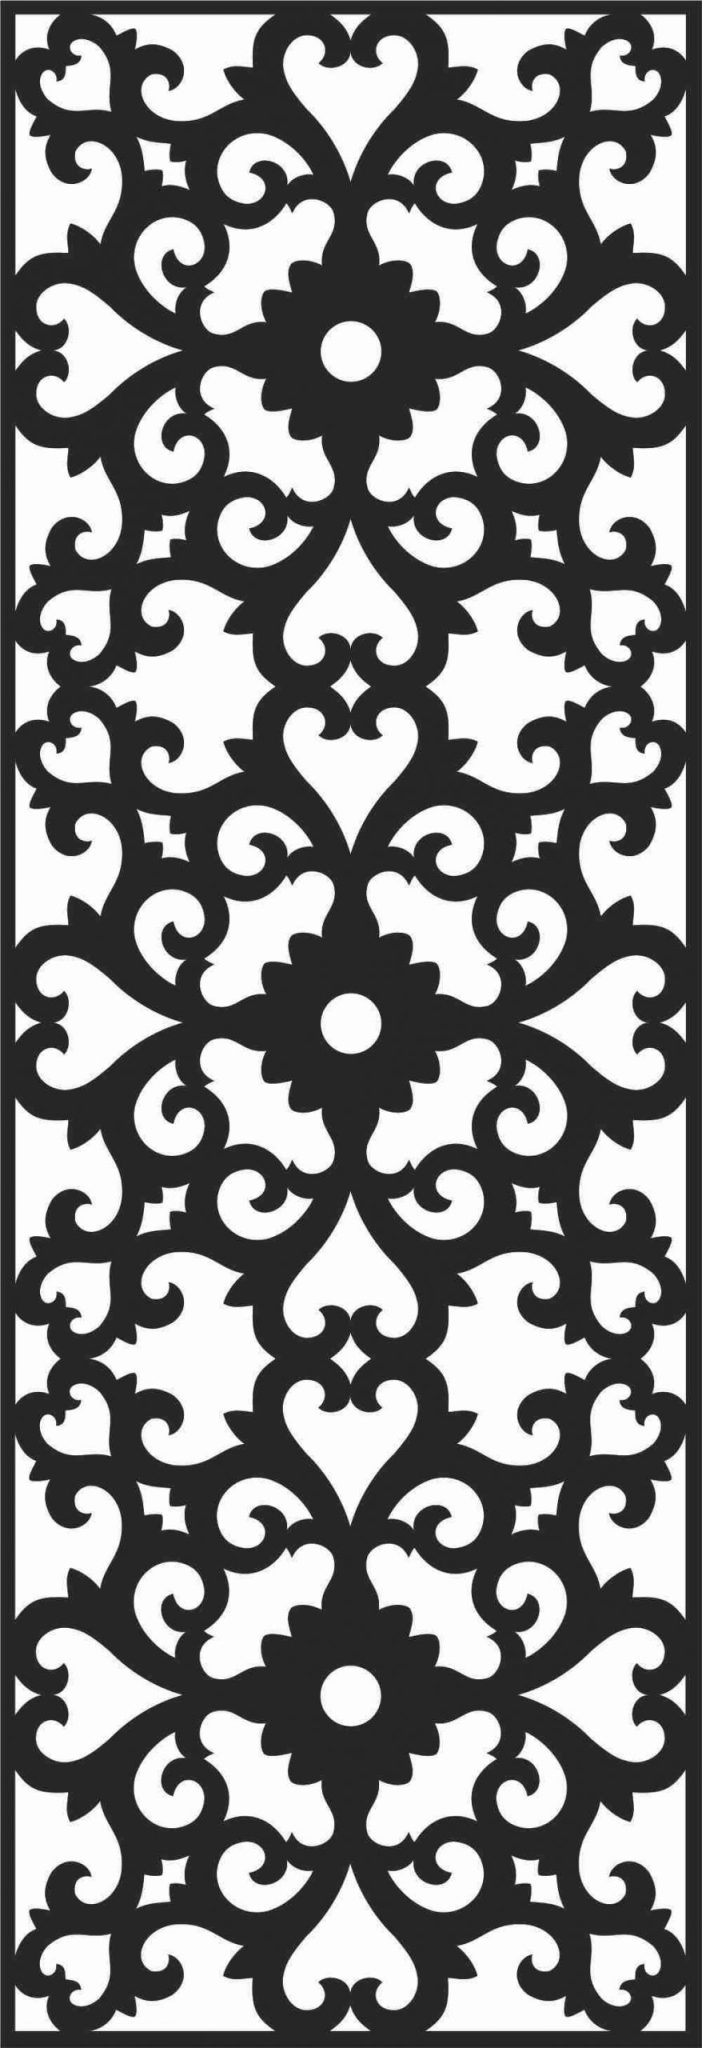 Decorative Screen Patterns For Laser Cutting 165 Free DXF File